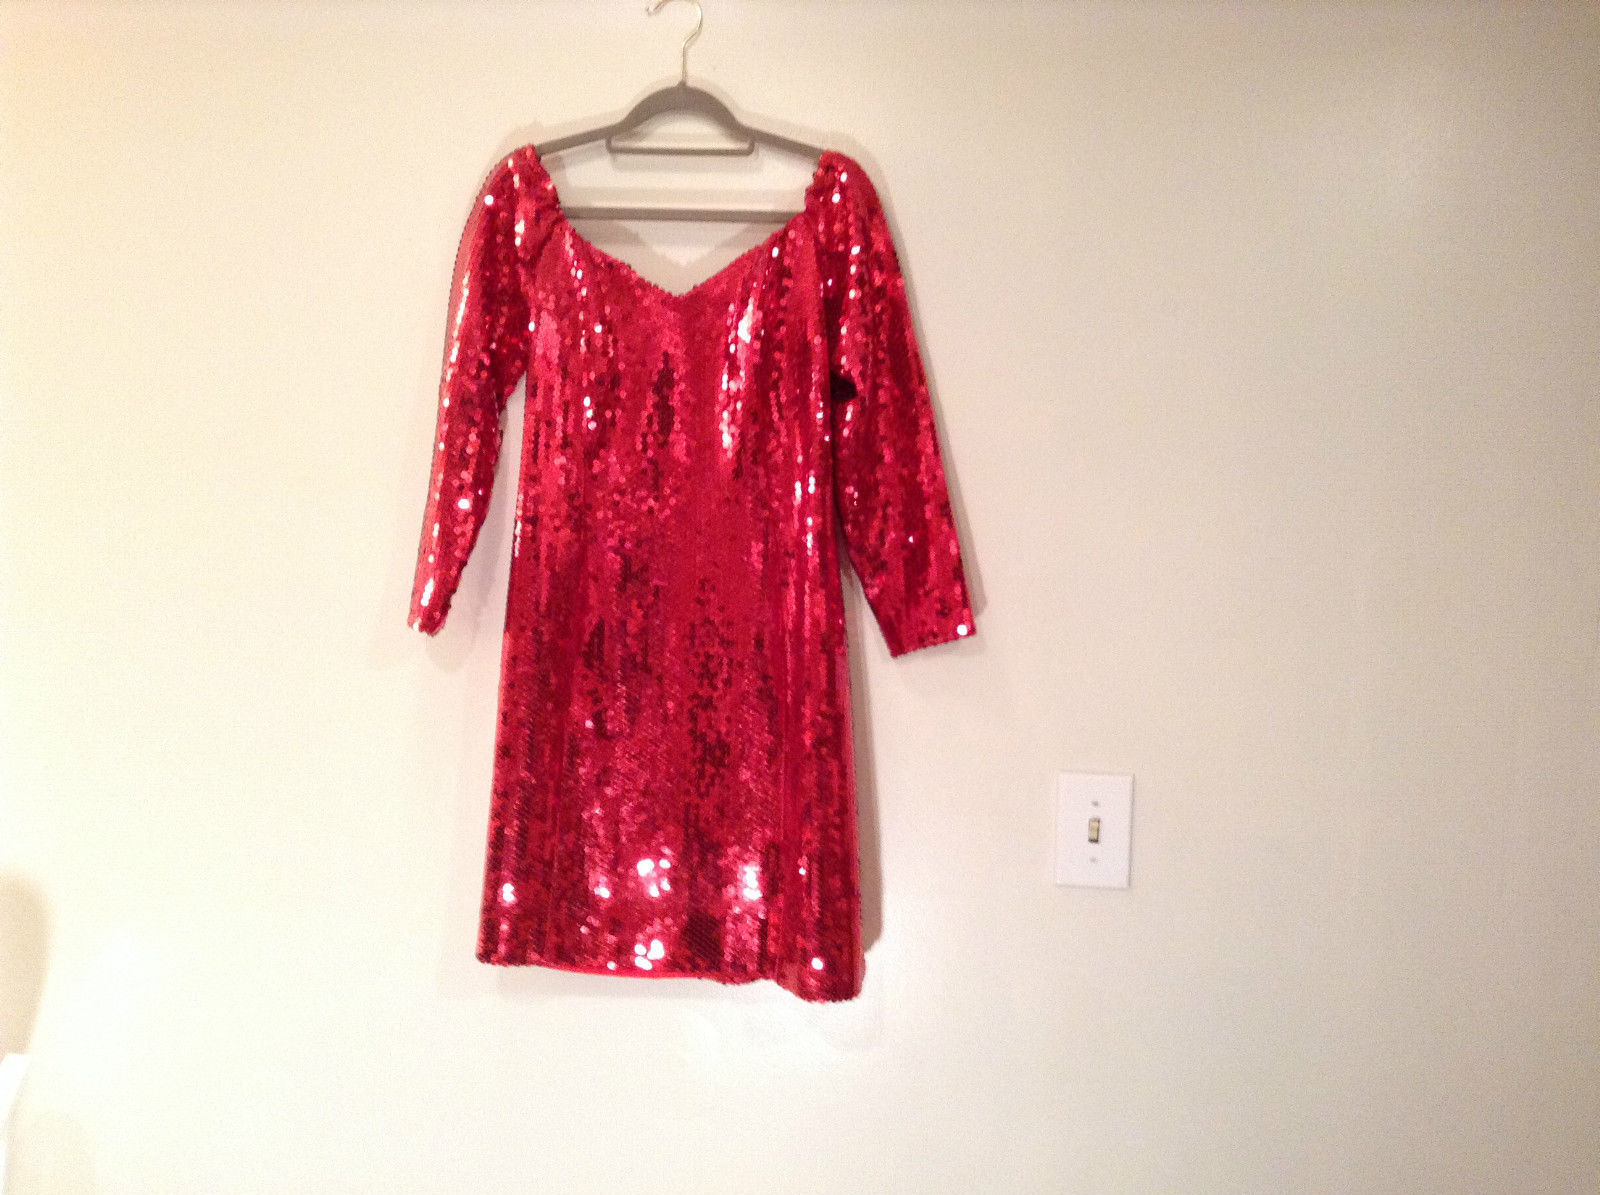 Evening Party Dress Sequined Handmade Red Long Sleeve Fully Lined Wide Neck Line